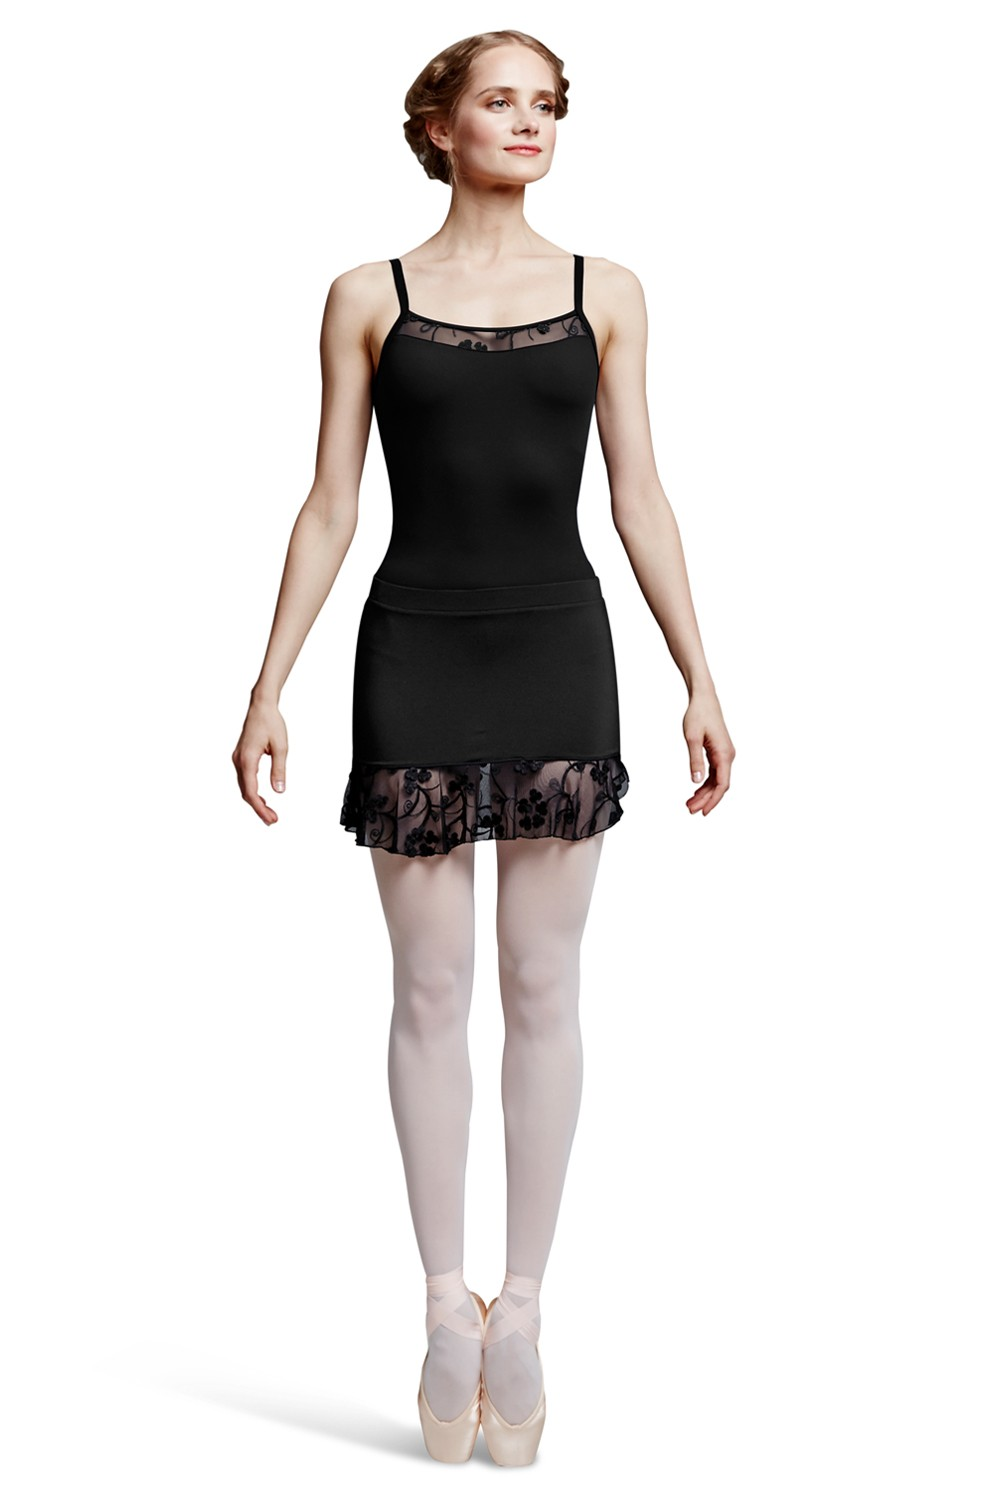 Viscosa Women's Dance Skirts